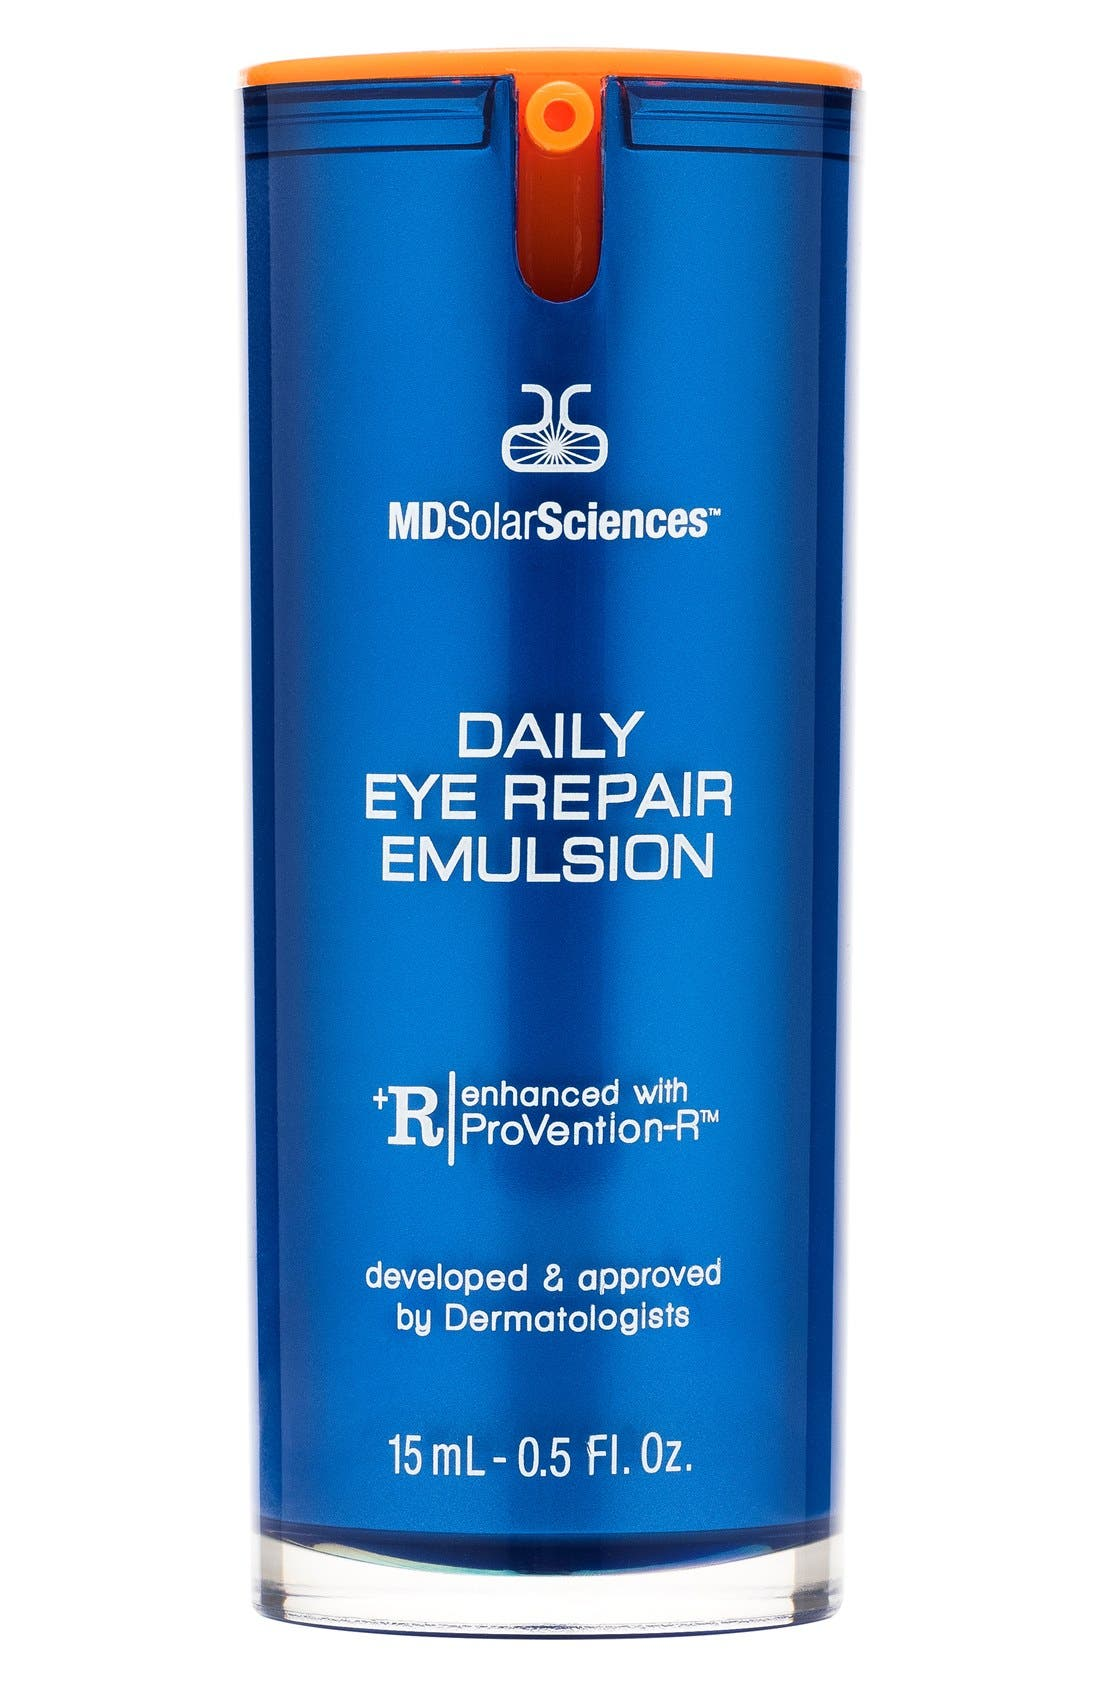 MDSolarSciences™ Daily Eye Repair Emulsion